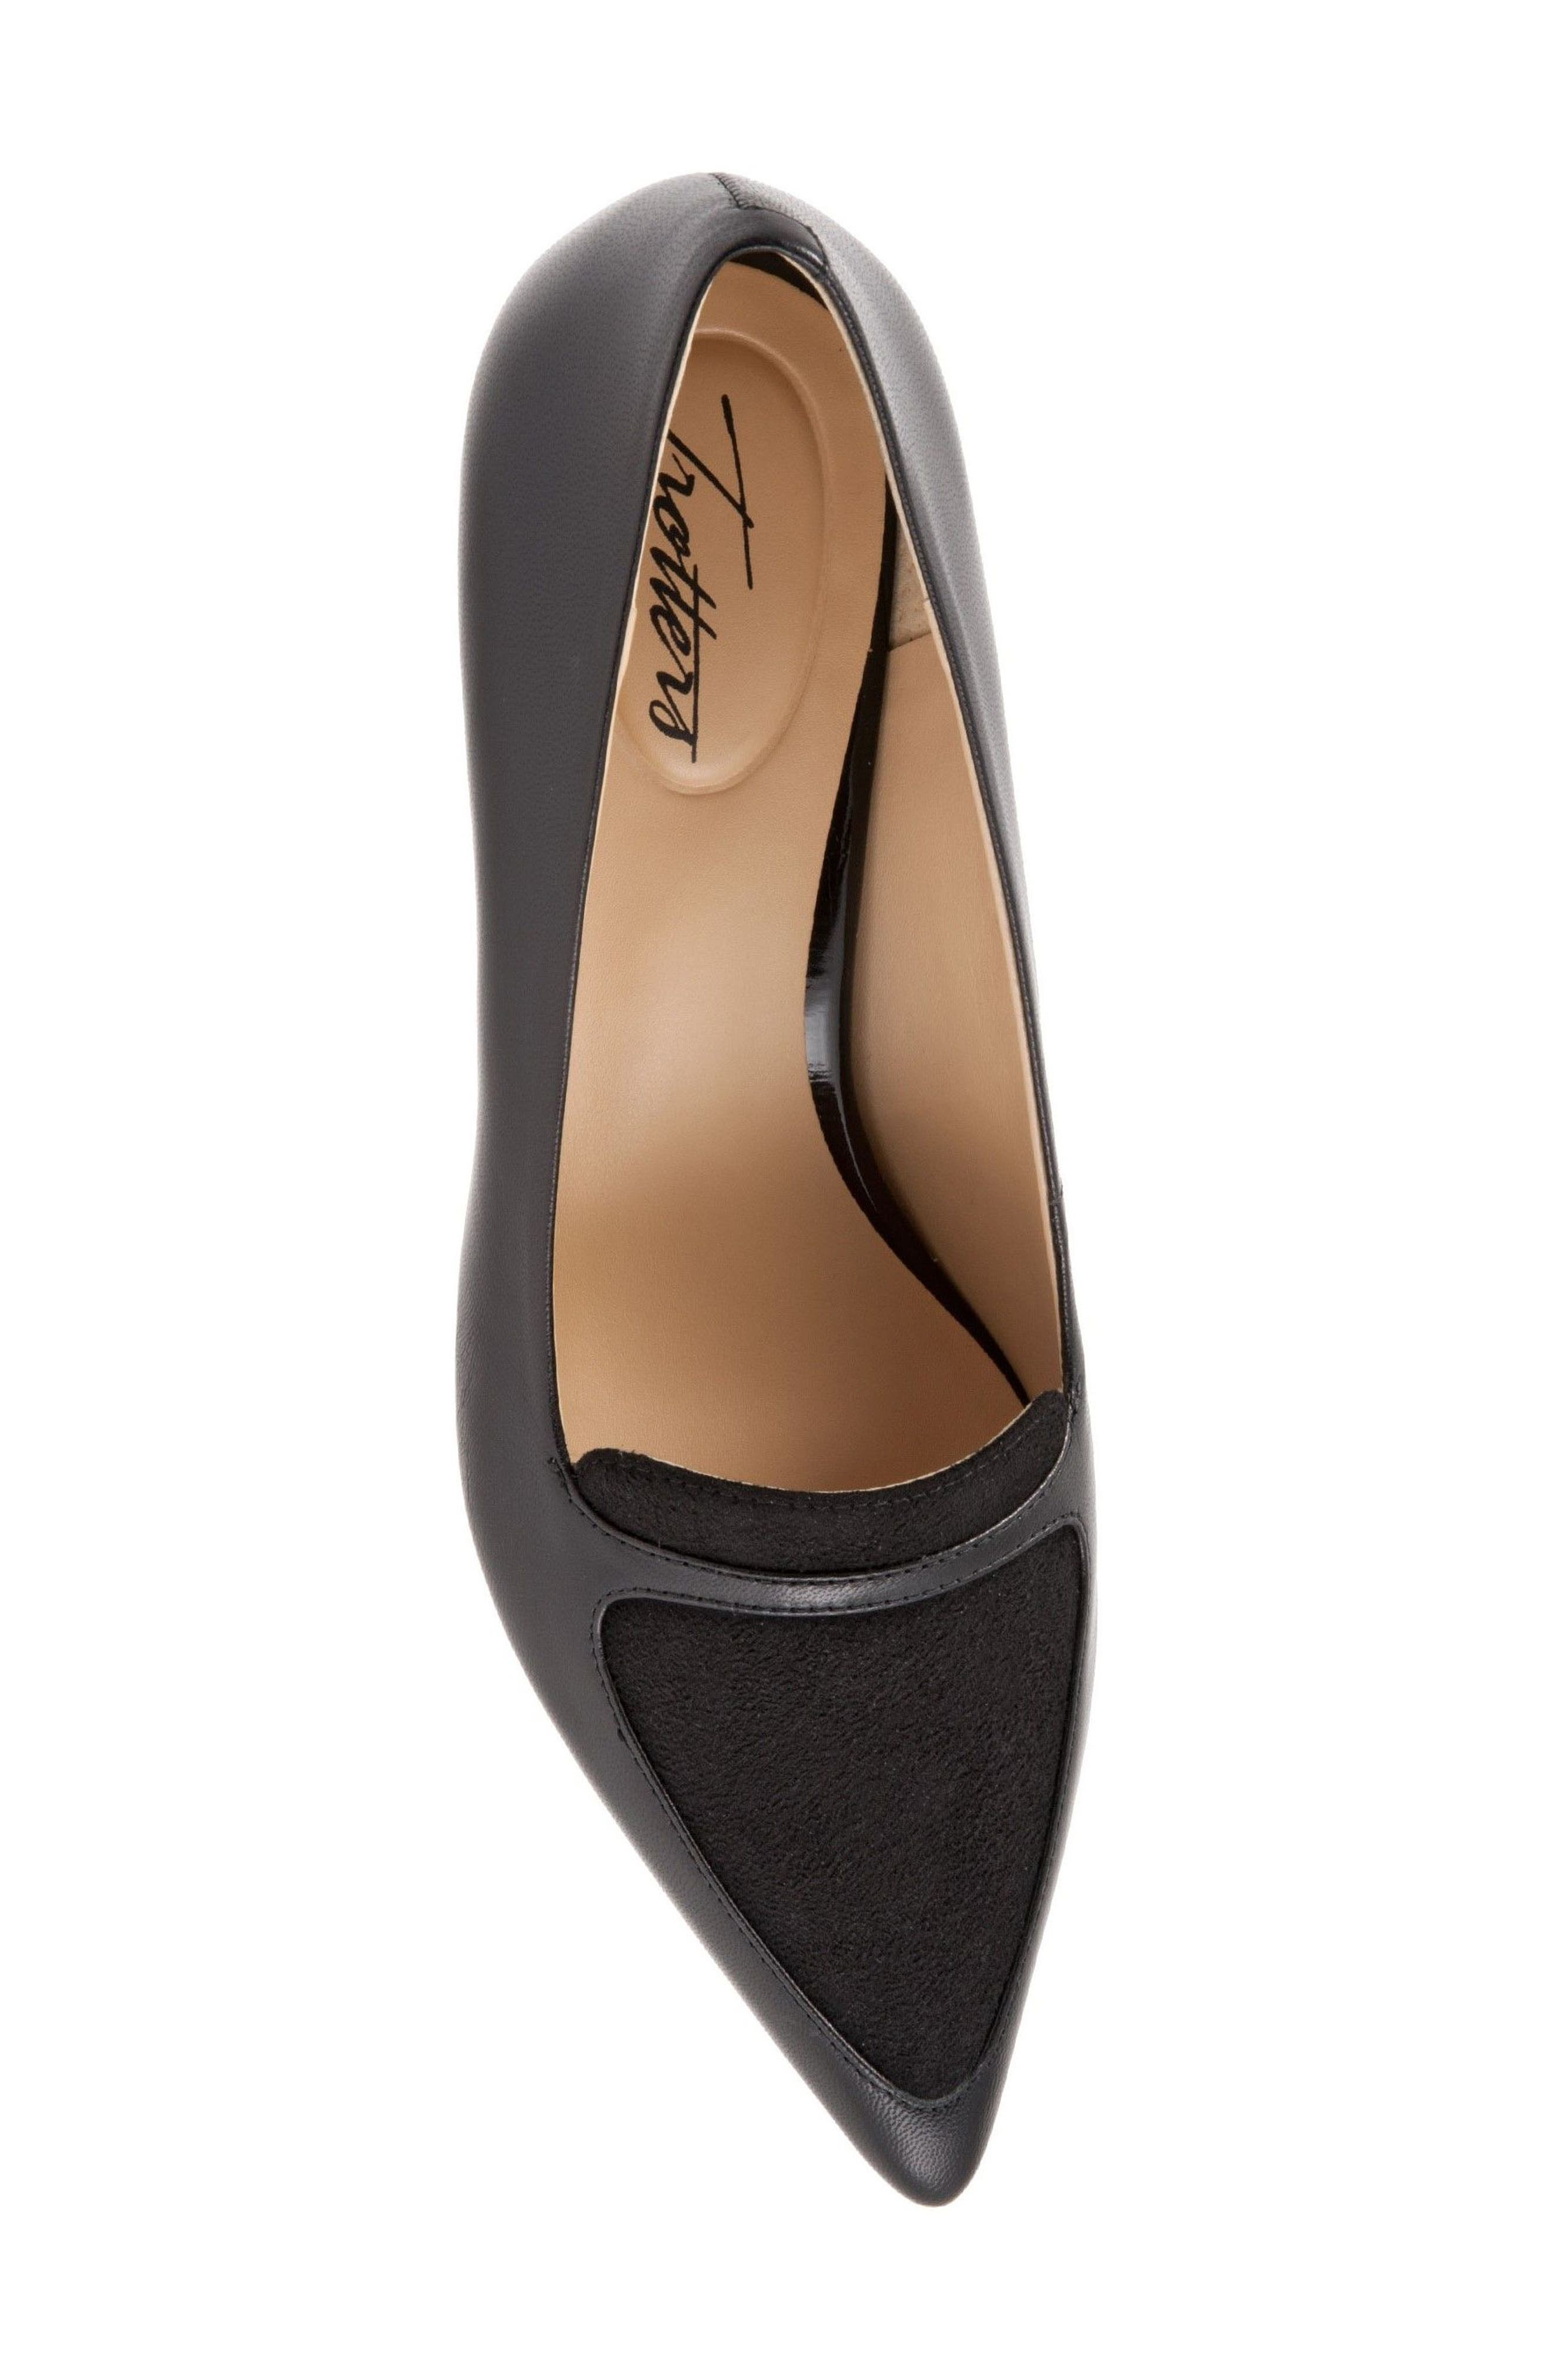 'Piper' Pointy Toe Pump,                             Alternate thumbnail 5, color,                             Black